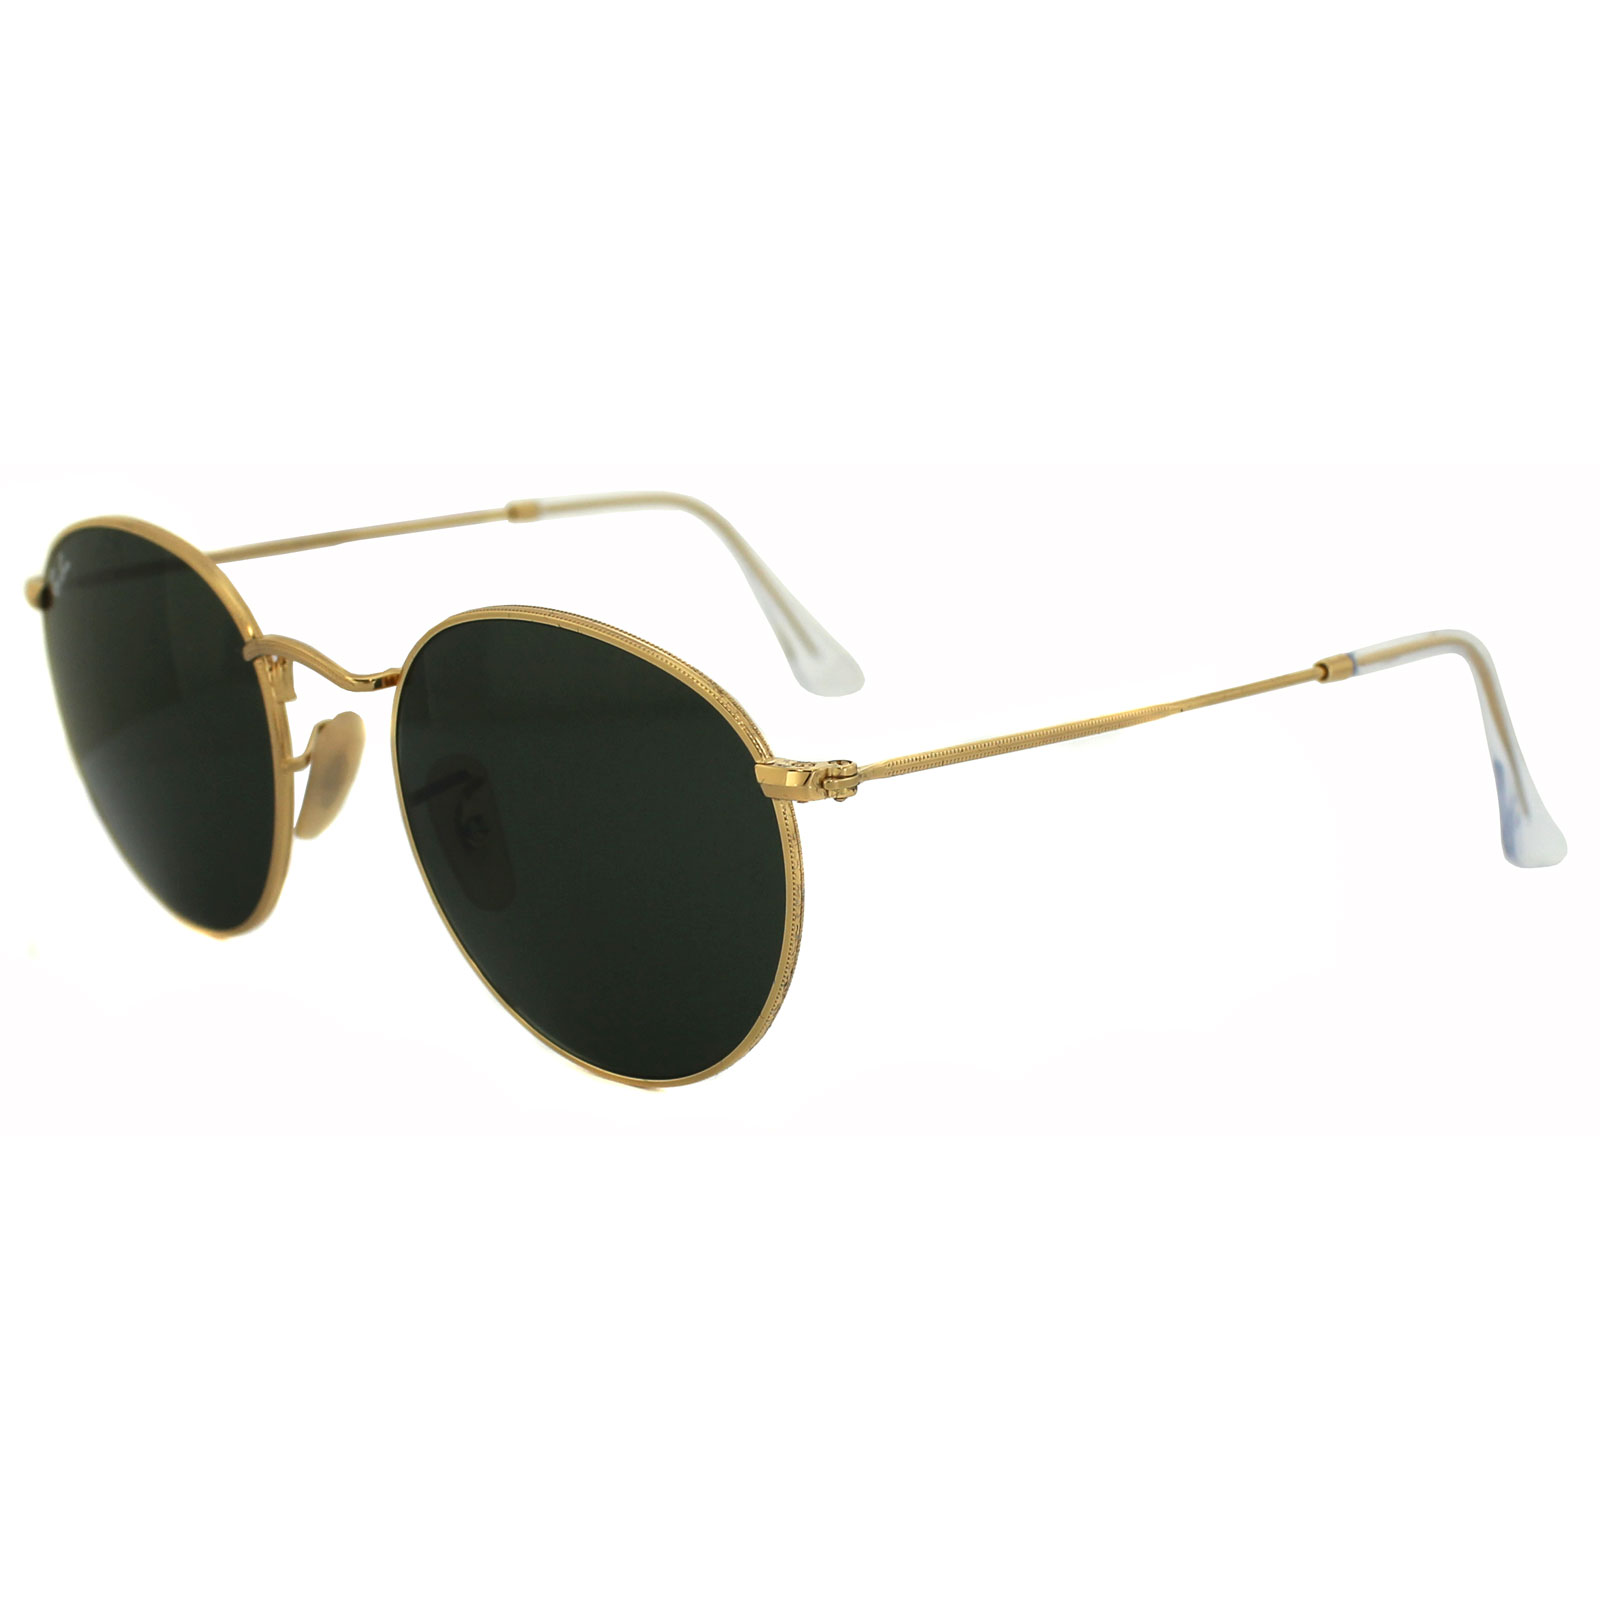 Sentinel Ray-Ban Sunglasses Round Metal 3447 001 Gold Green Medium 50mm c8475a9611